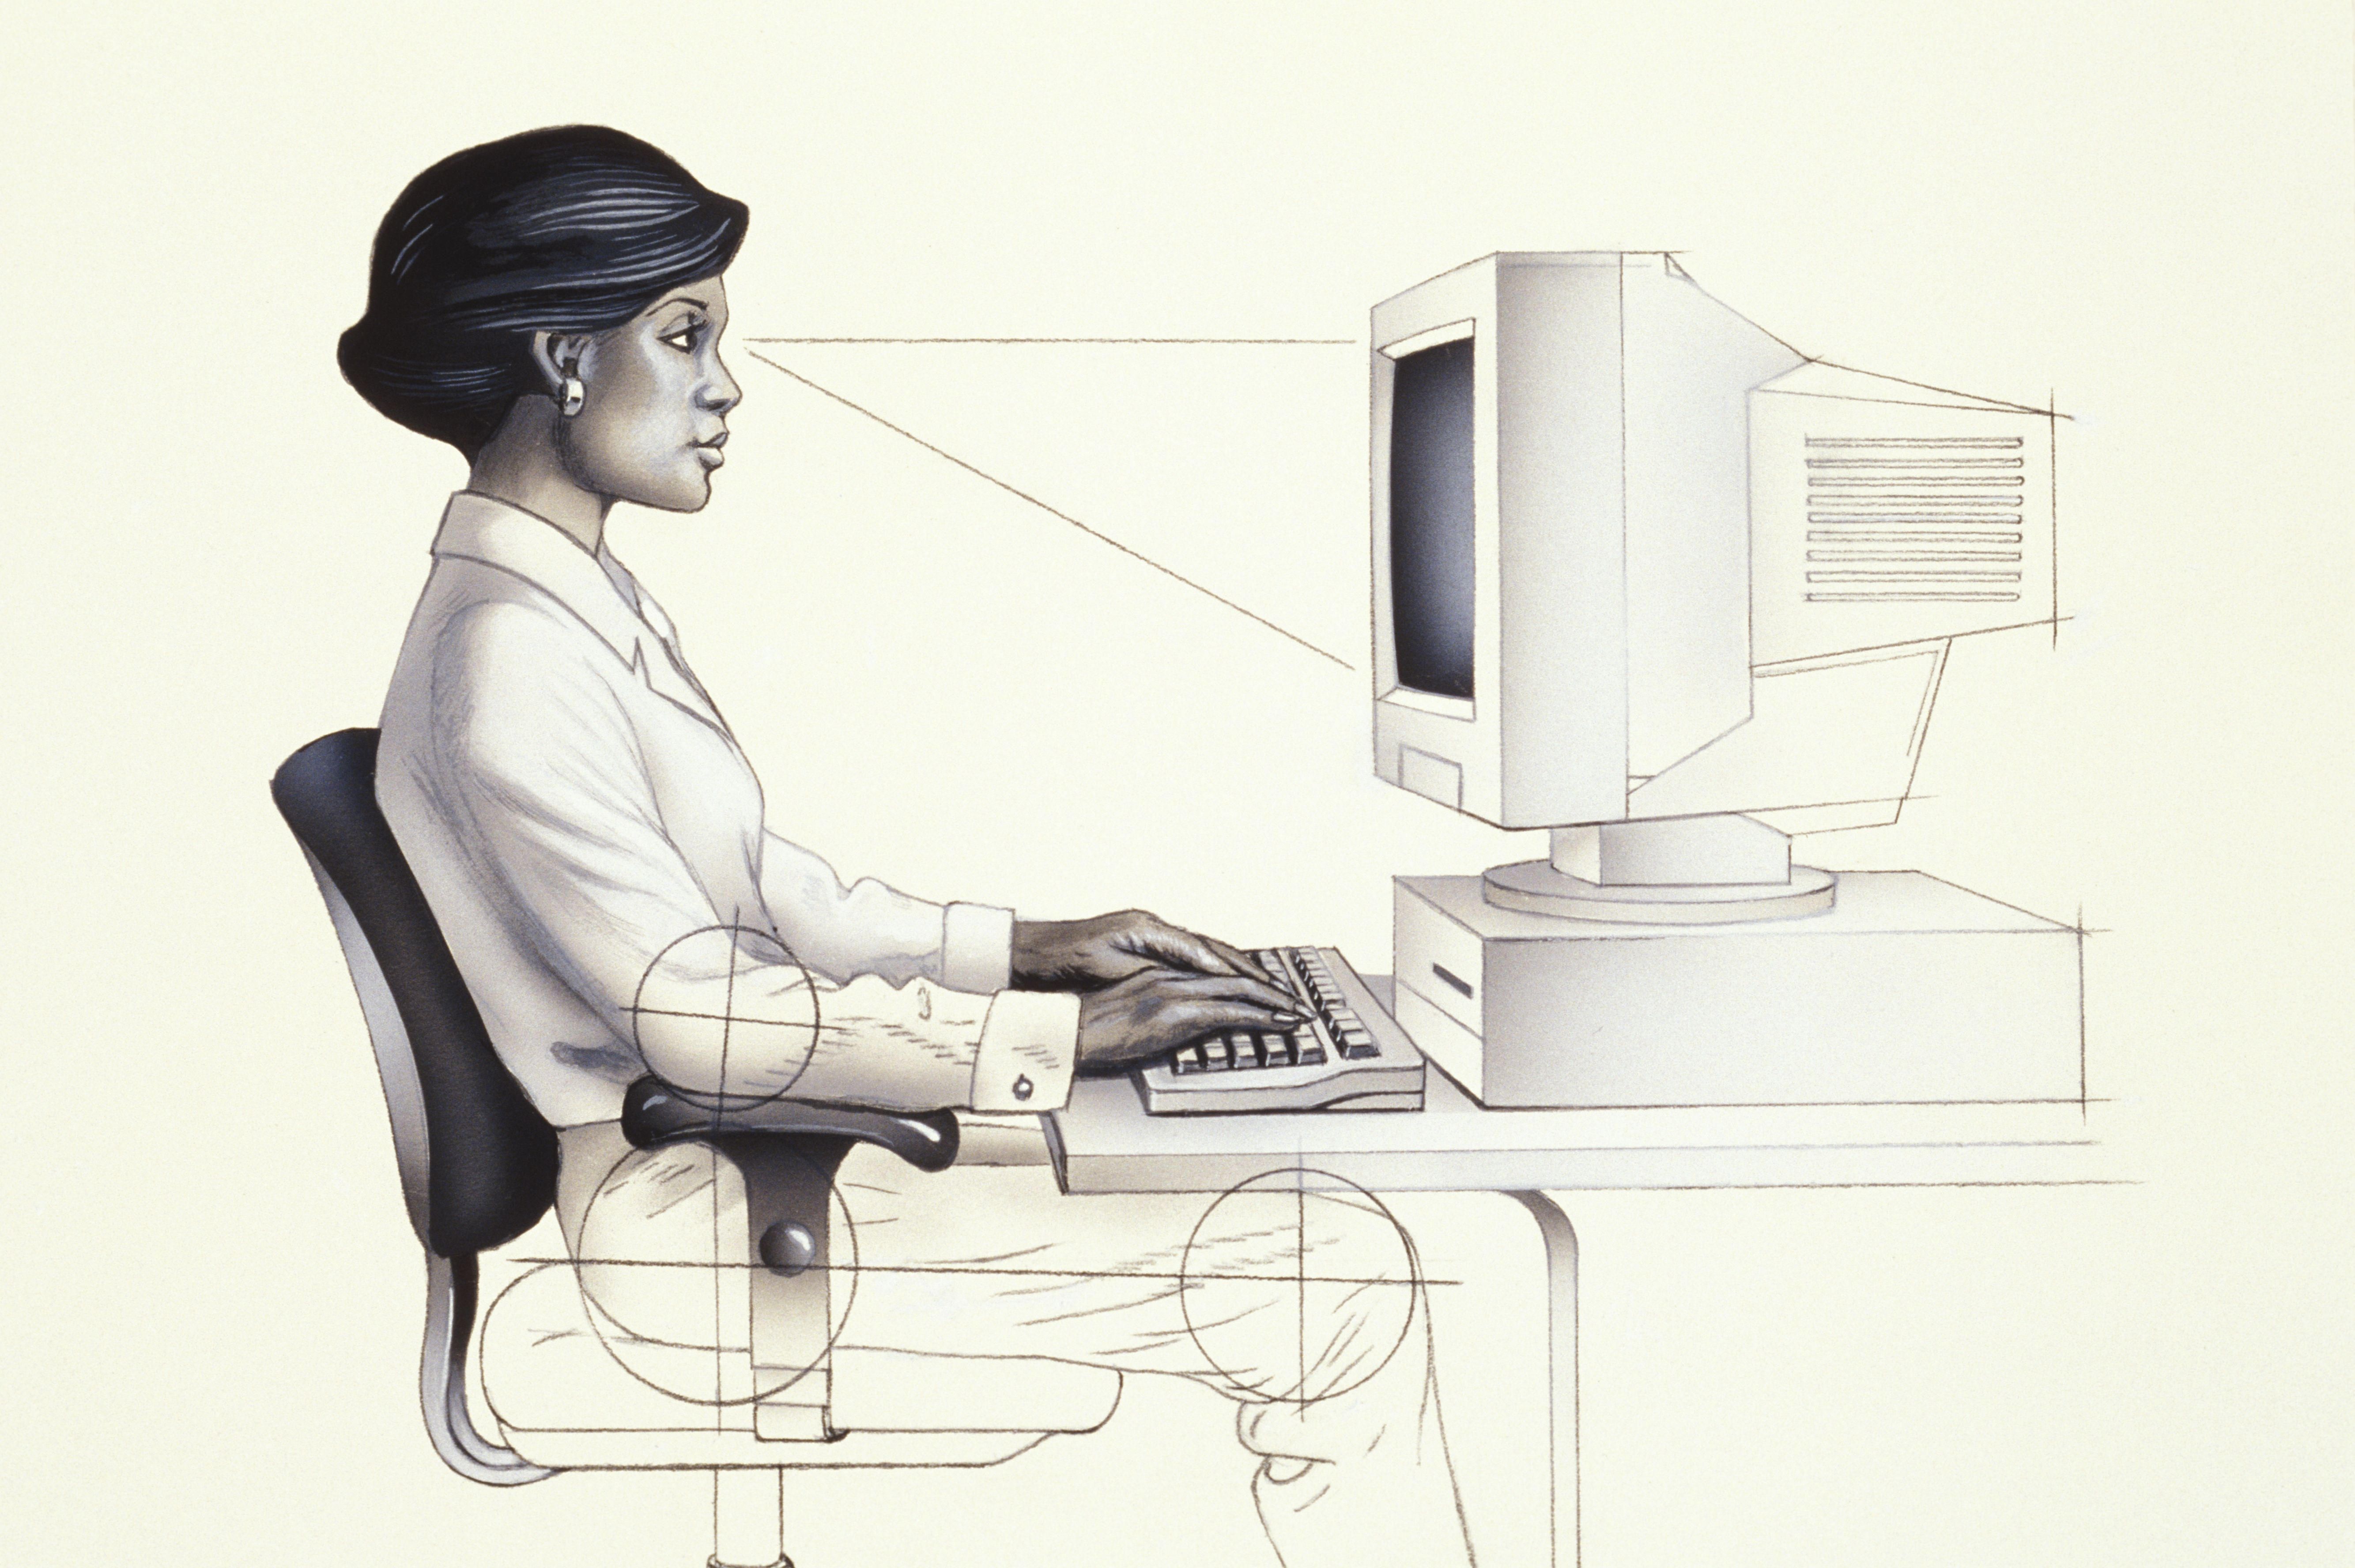 Phenomenal How Ergonomic Workstations Affect Your Neck And Back Wiring Cloud Mangdienstapotheekhoekschewaardnl